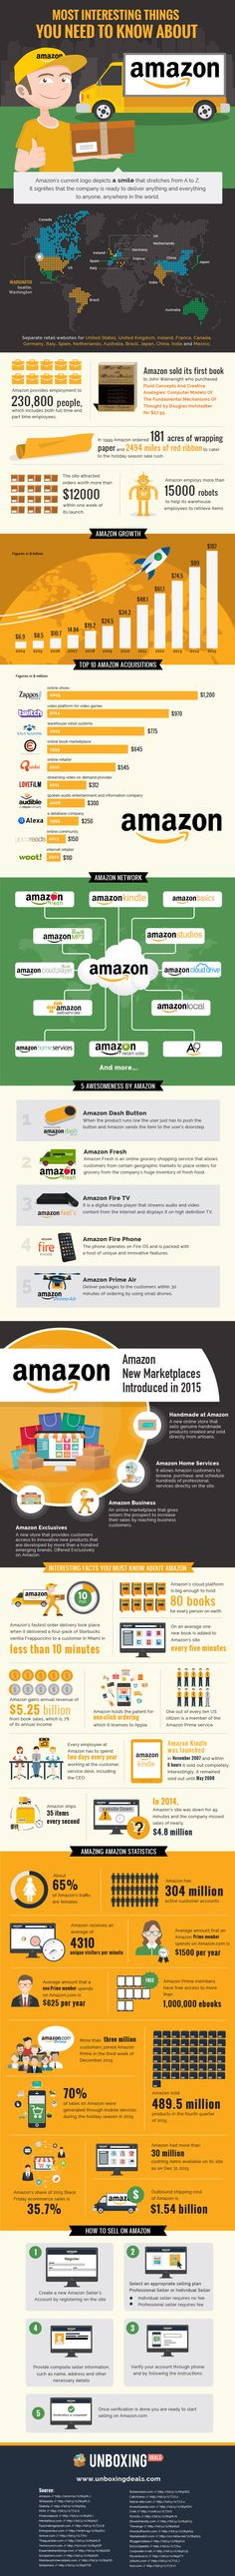 Most Interesting Things You Need To Know About Amazon - #infographic